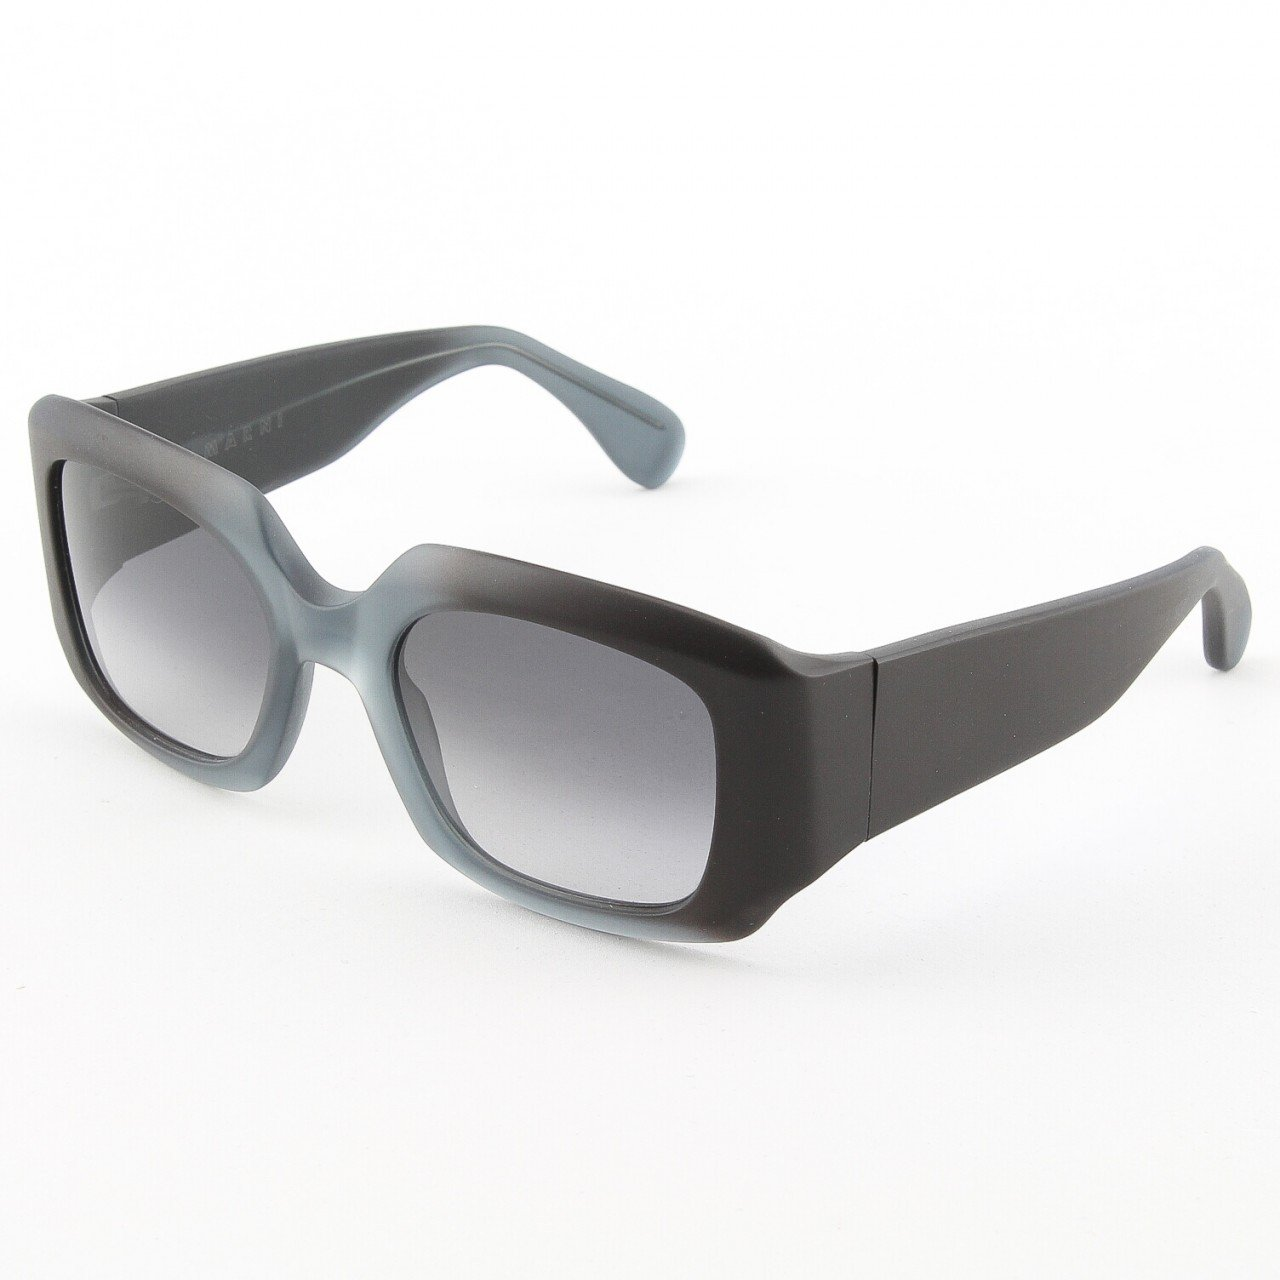 Marni MA129S Sunglasses Col. 18 Dark Charcoal Light Gray with Gray Gradient Lenses